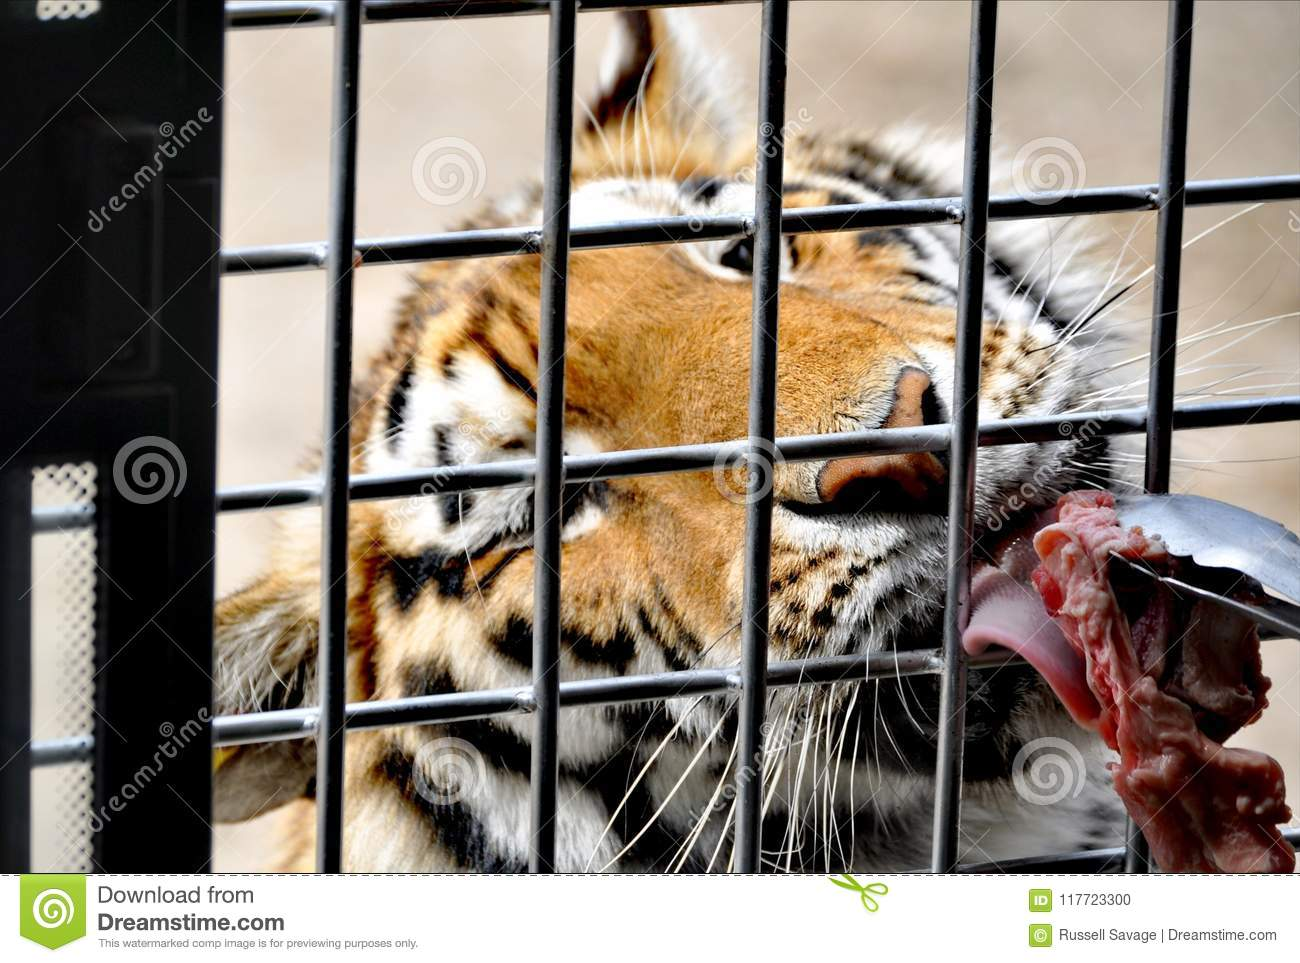 A hungry tiger in Harbin